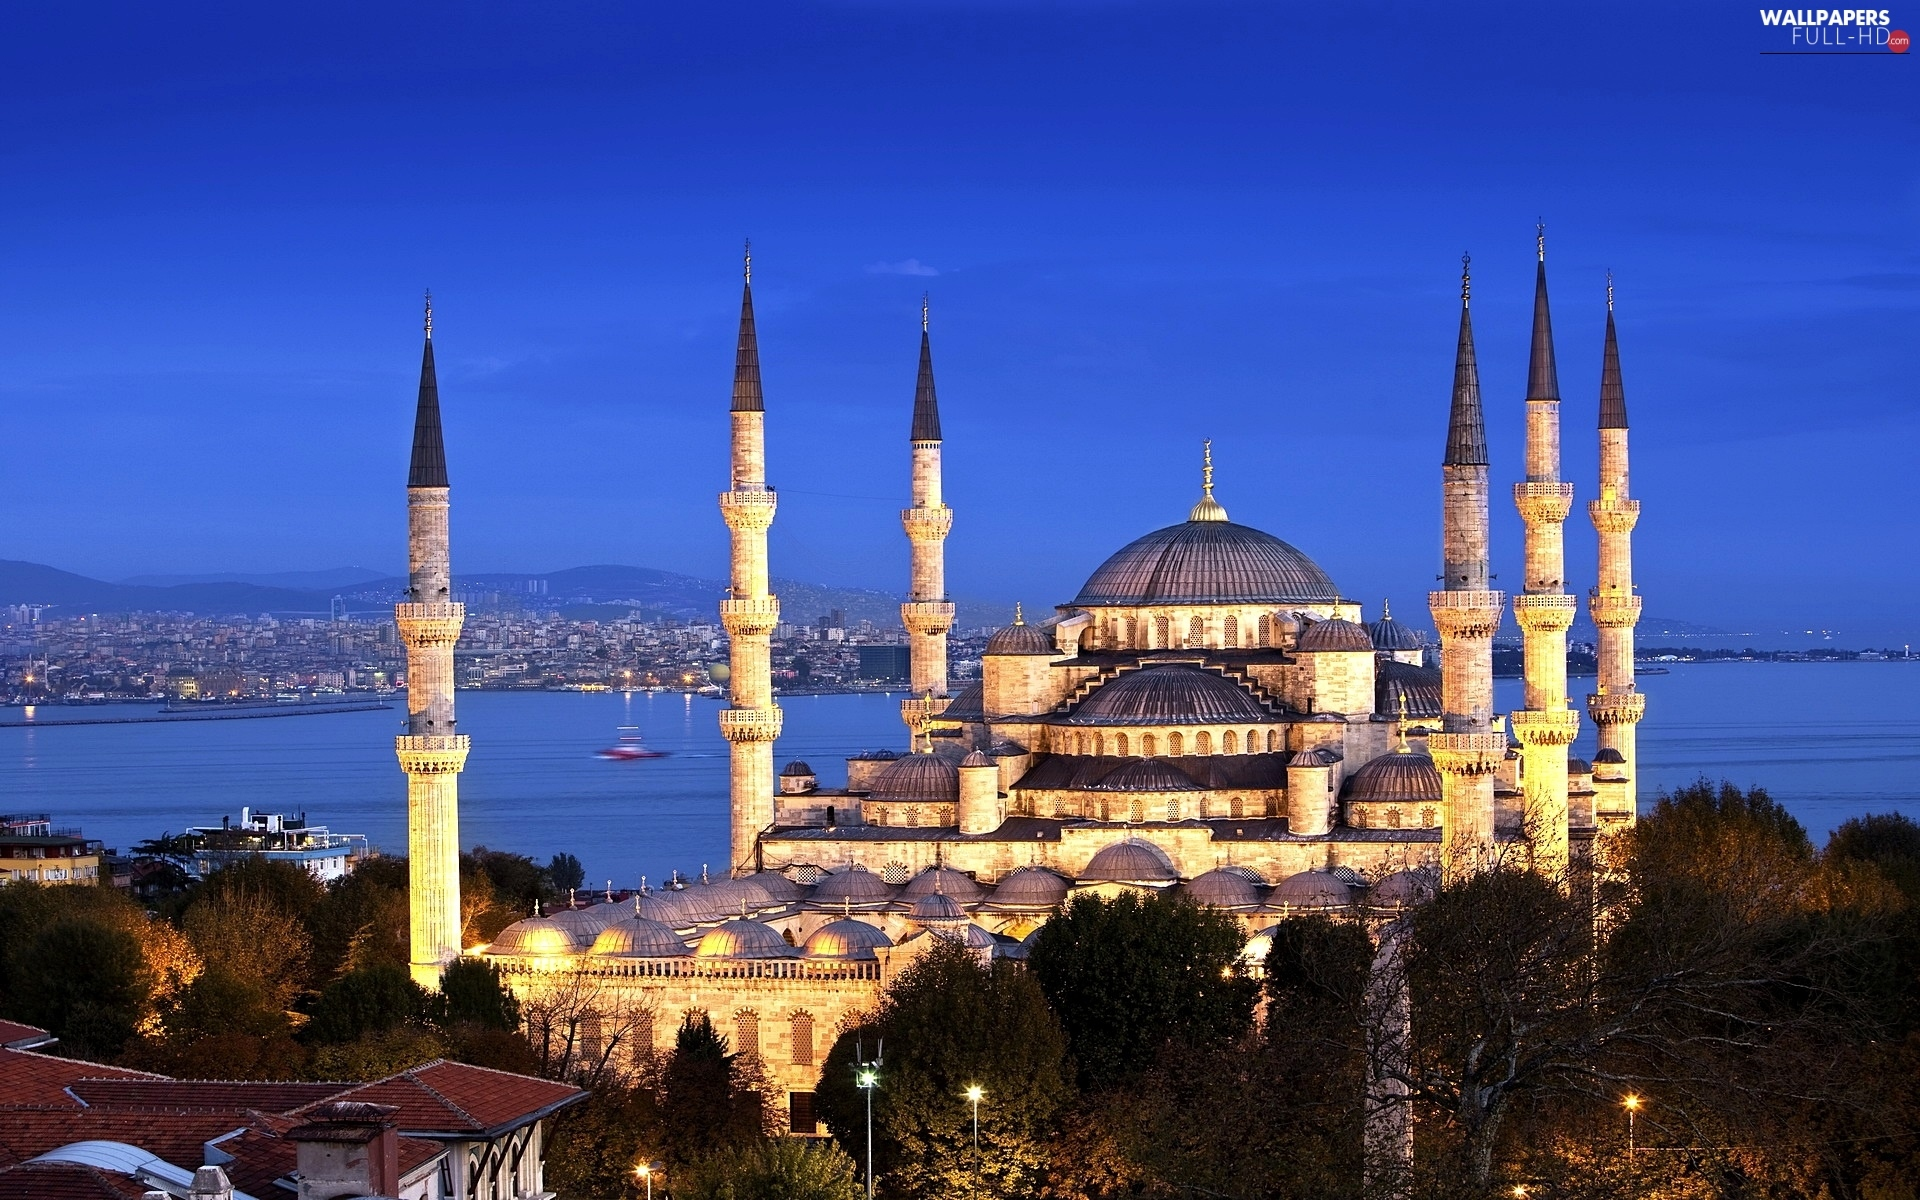 Turkey, Istanbul, Sultan Ahmed Mosque, The Blue Mosque